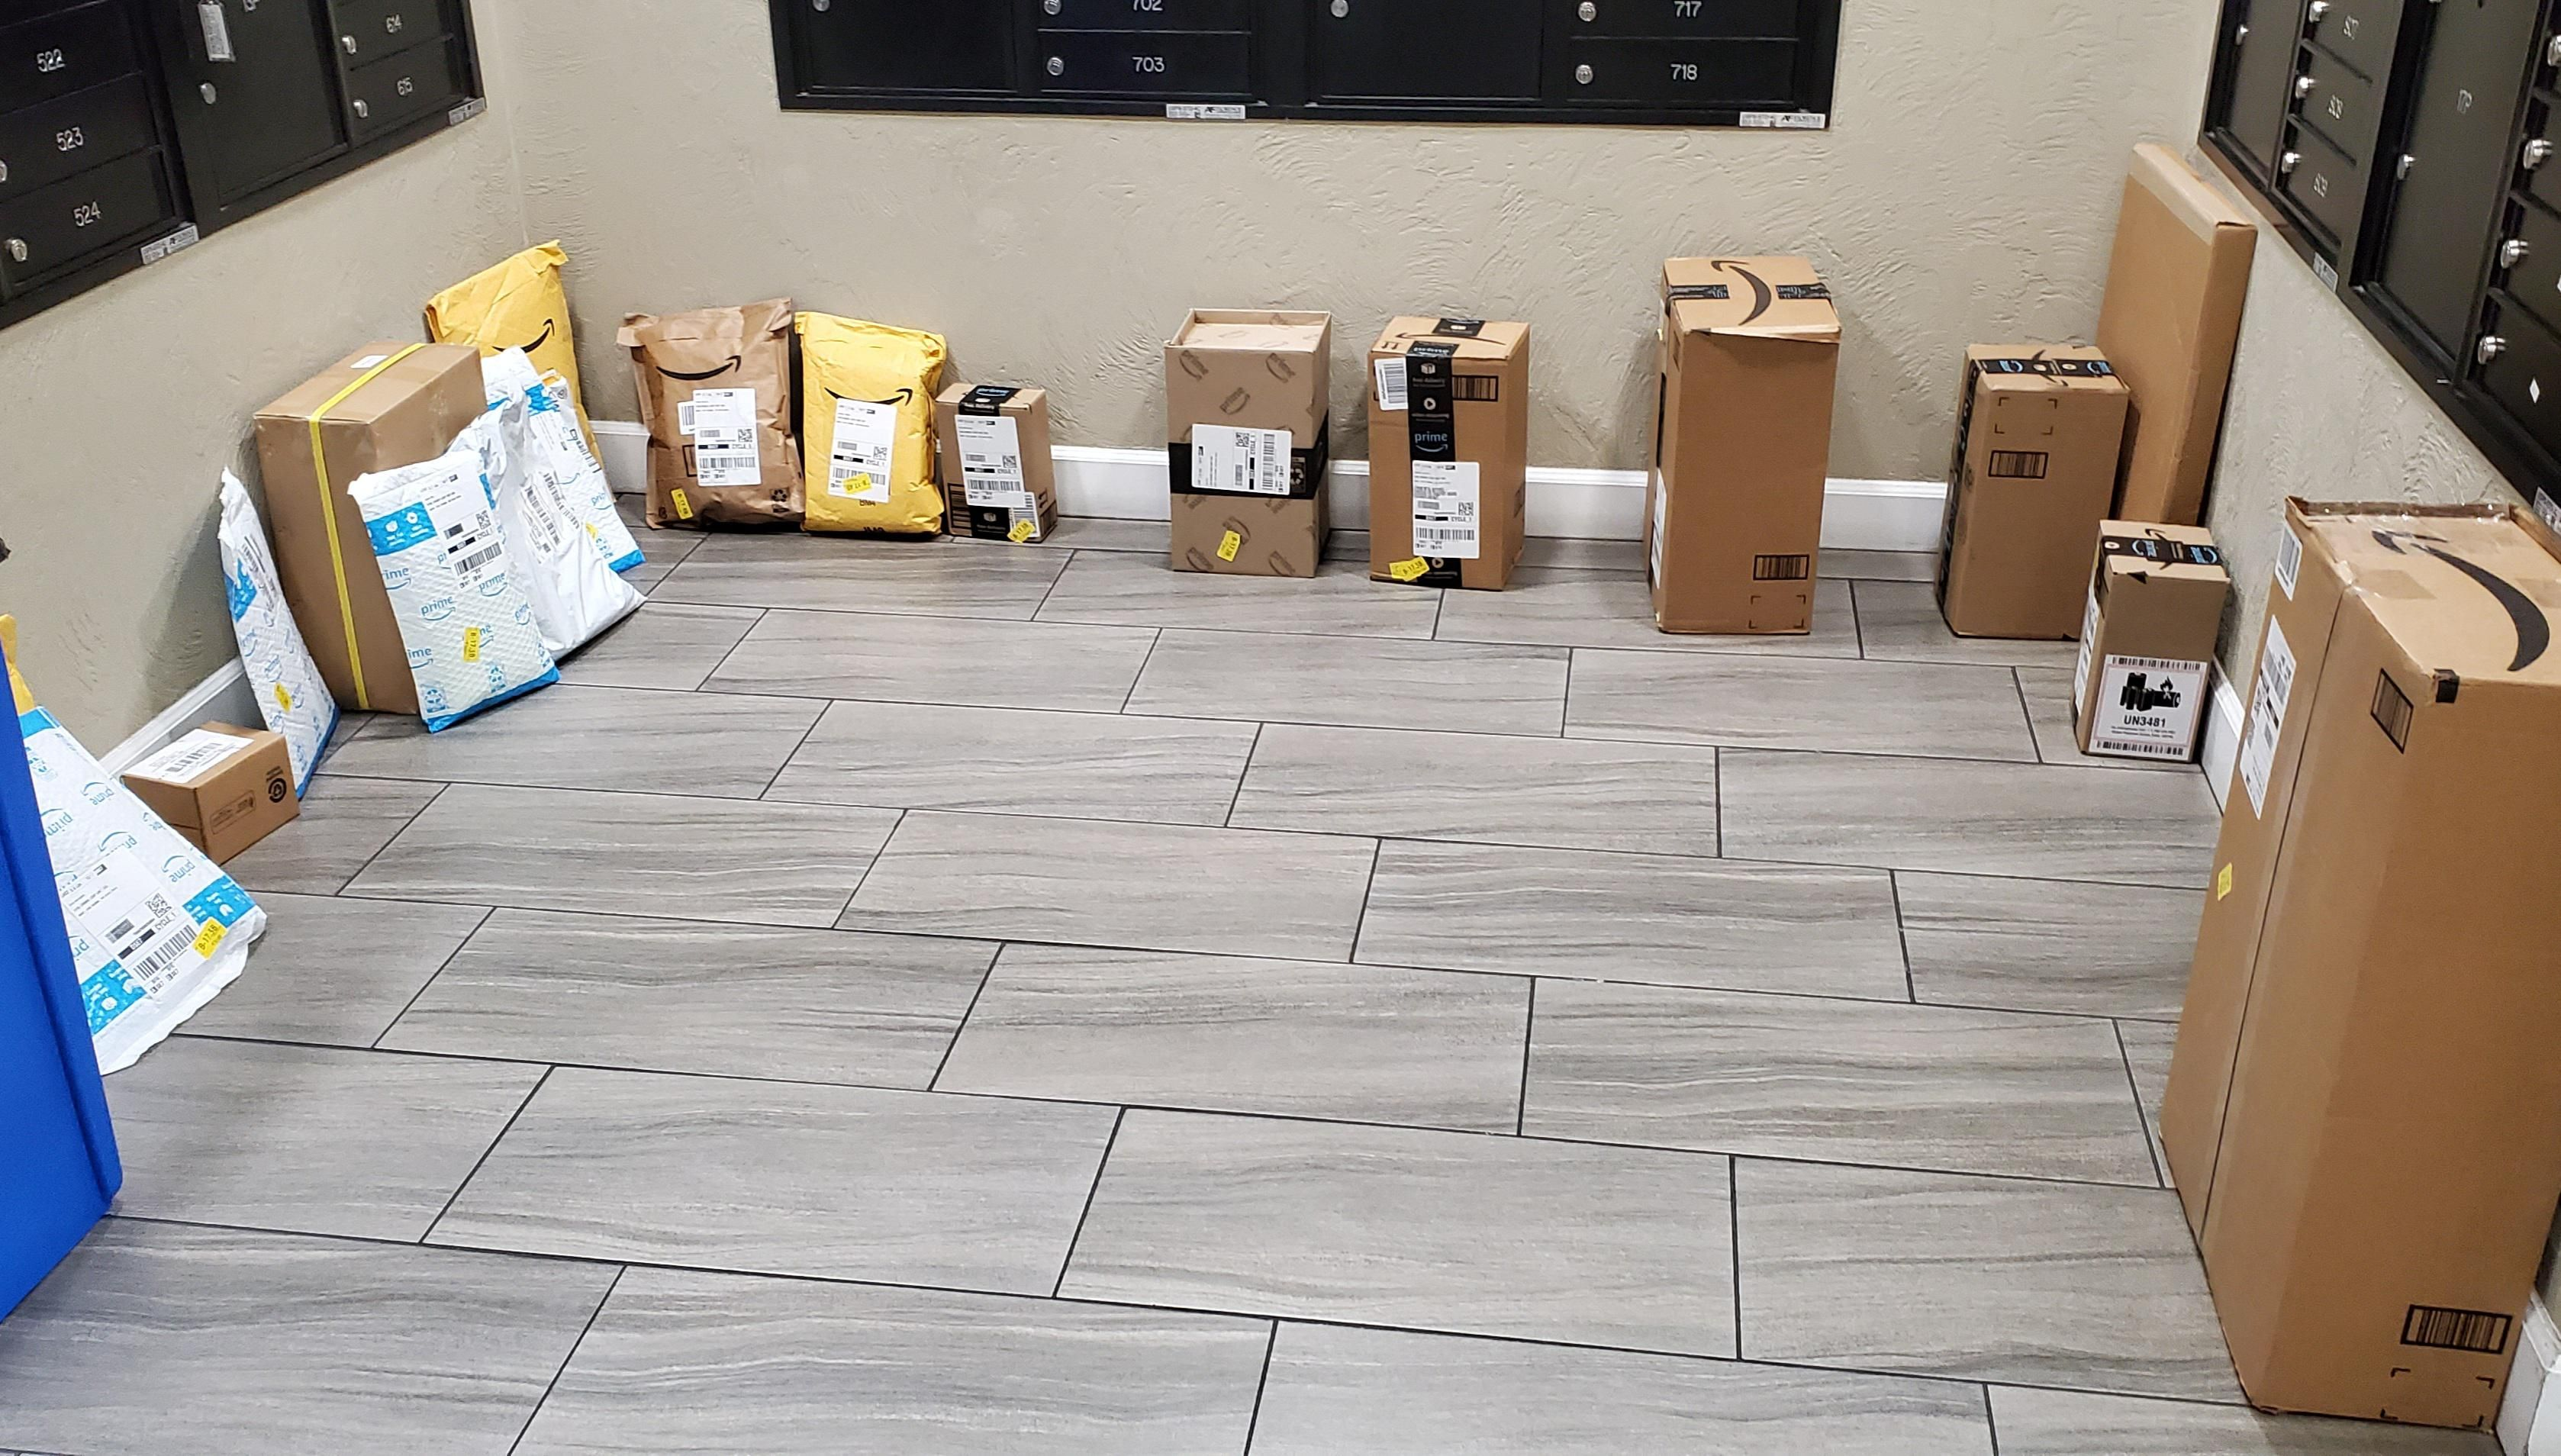 The aftermath of Prime Day at my apartment